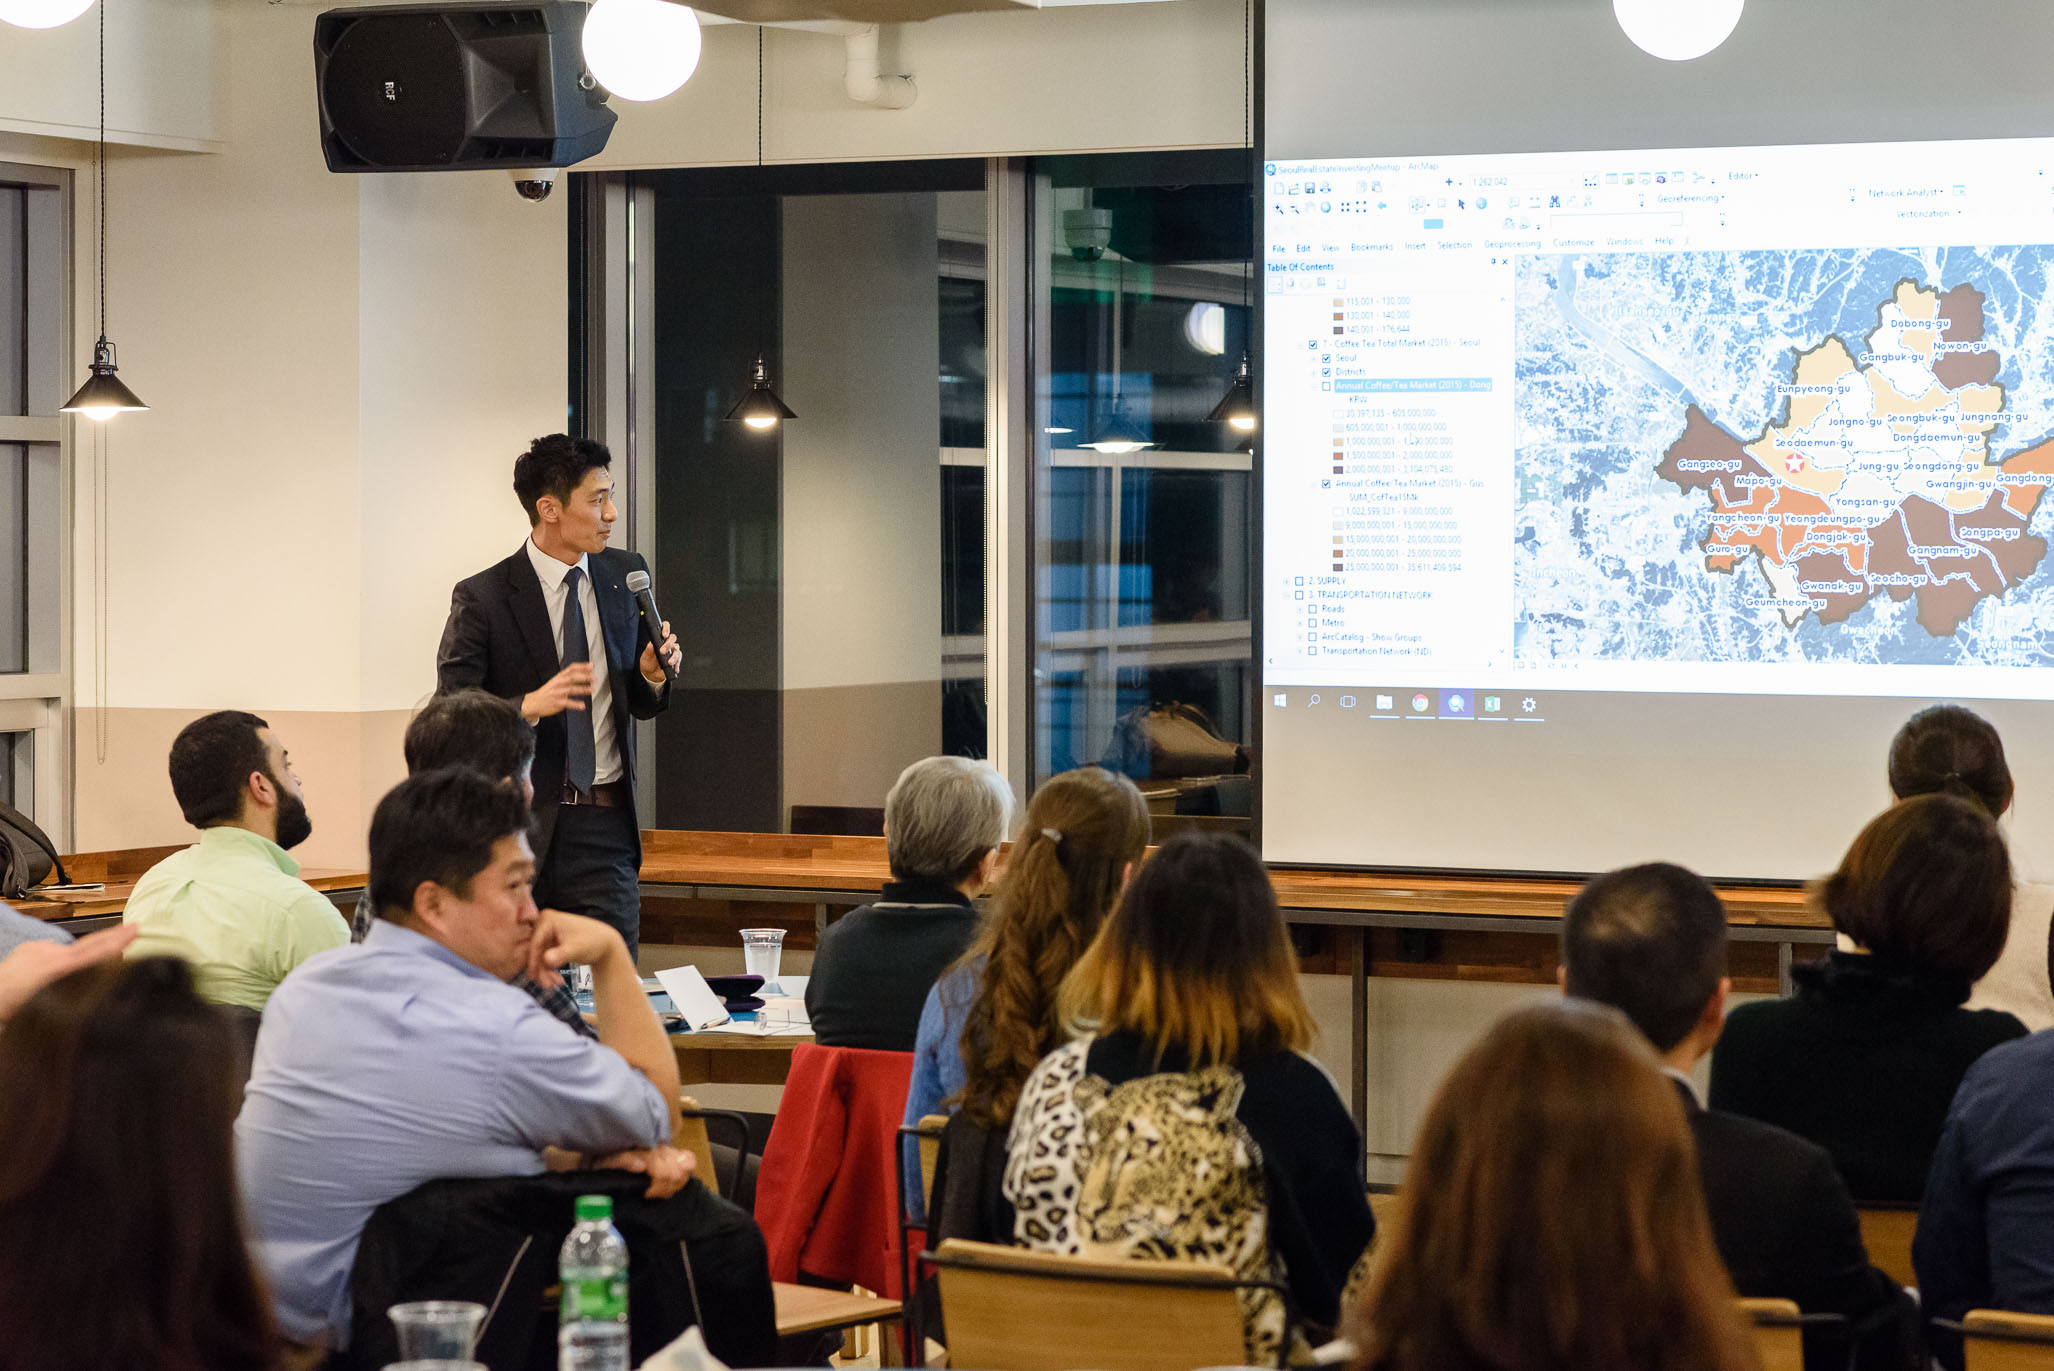 Raymond referring to a graduated color map in ArcGIS showing total coffee and tea sales by district for 2015. The darker areas represent districts with high coffee and tea sales. (Photo by Cristian Bucur)